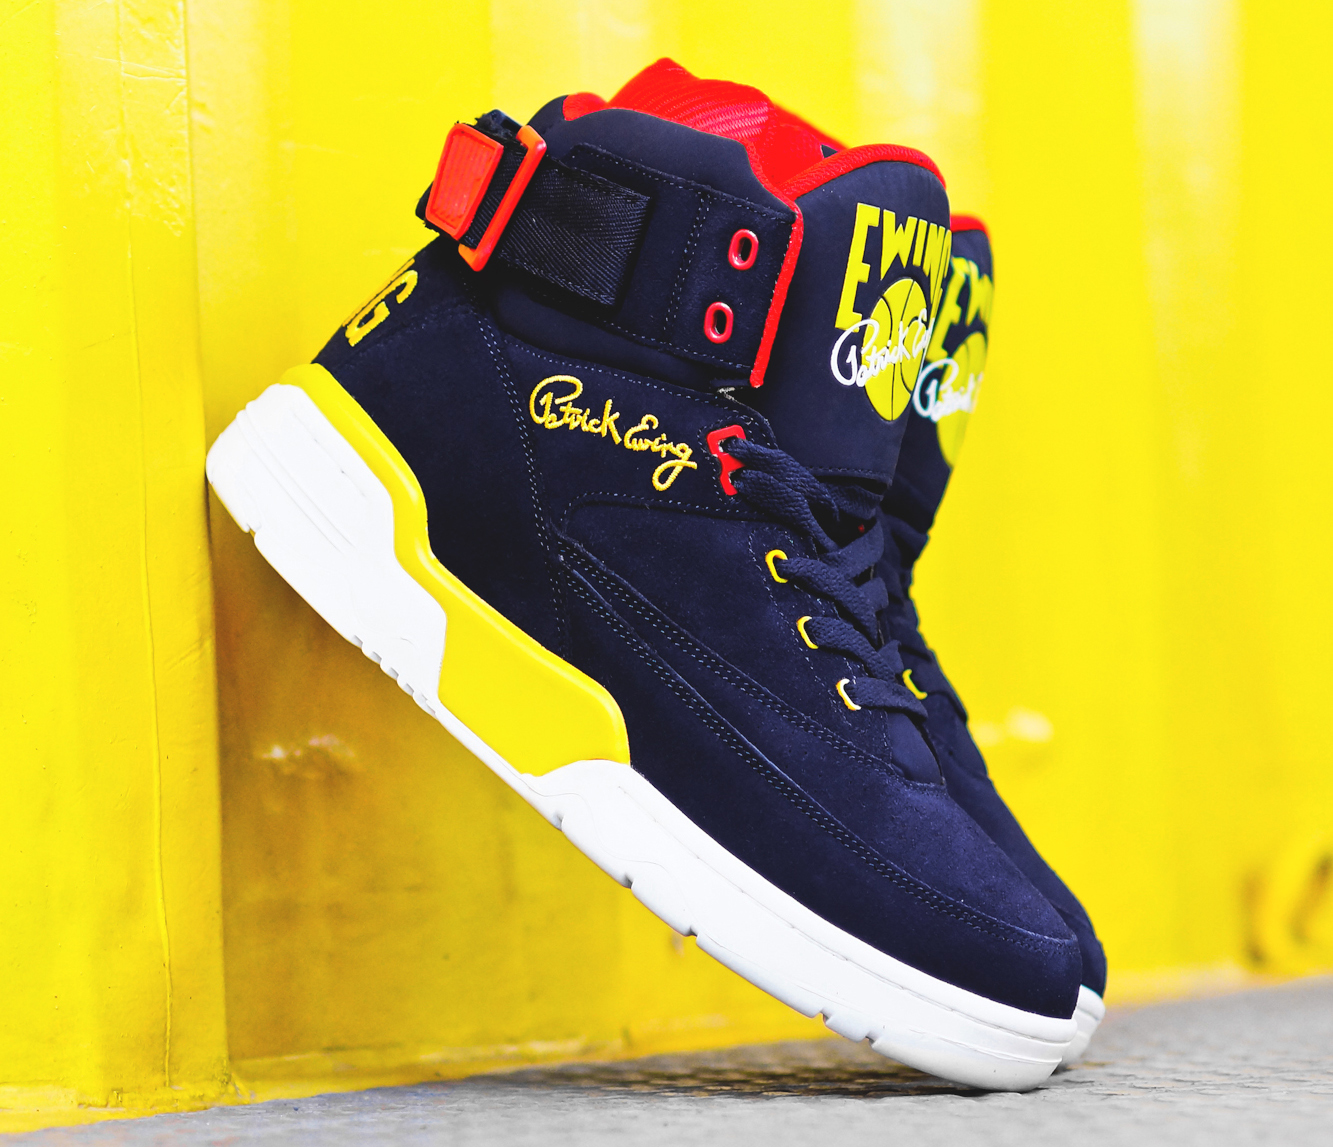 Patrick Ewing Shoes Black And Yellow